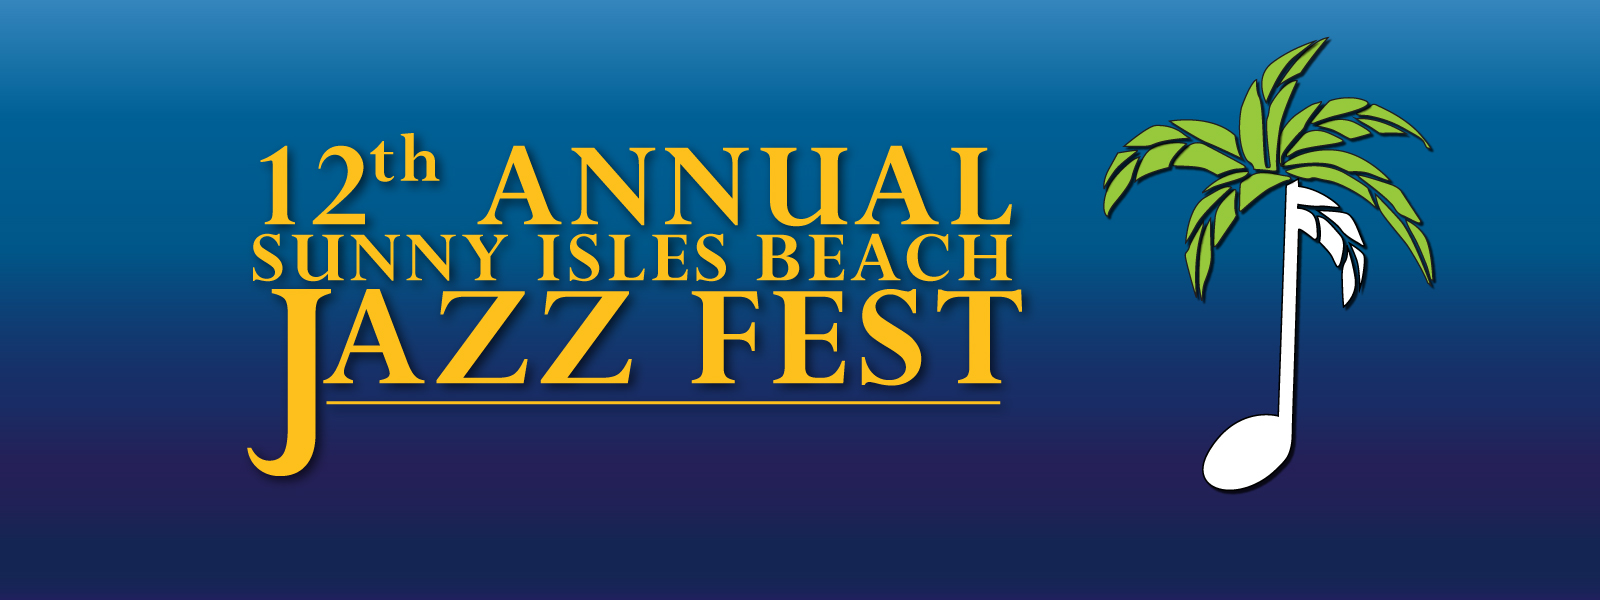 12th Annual Sunny Isles Beach Jazz Fest